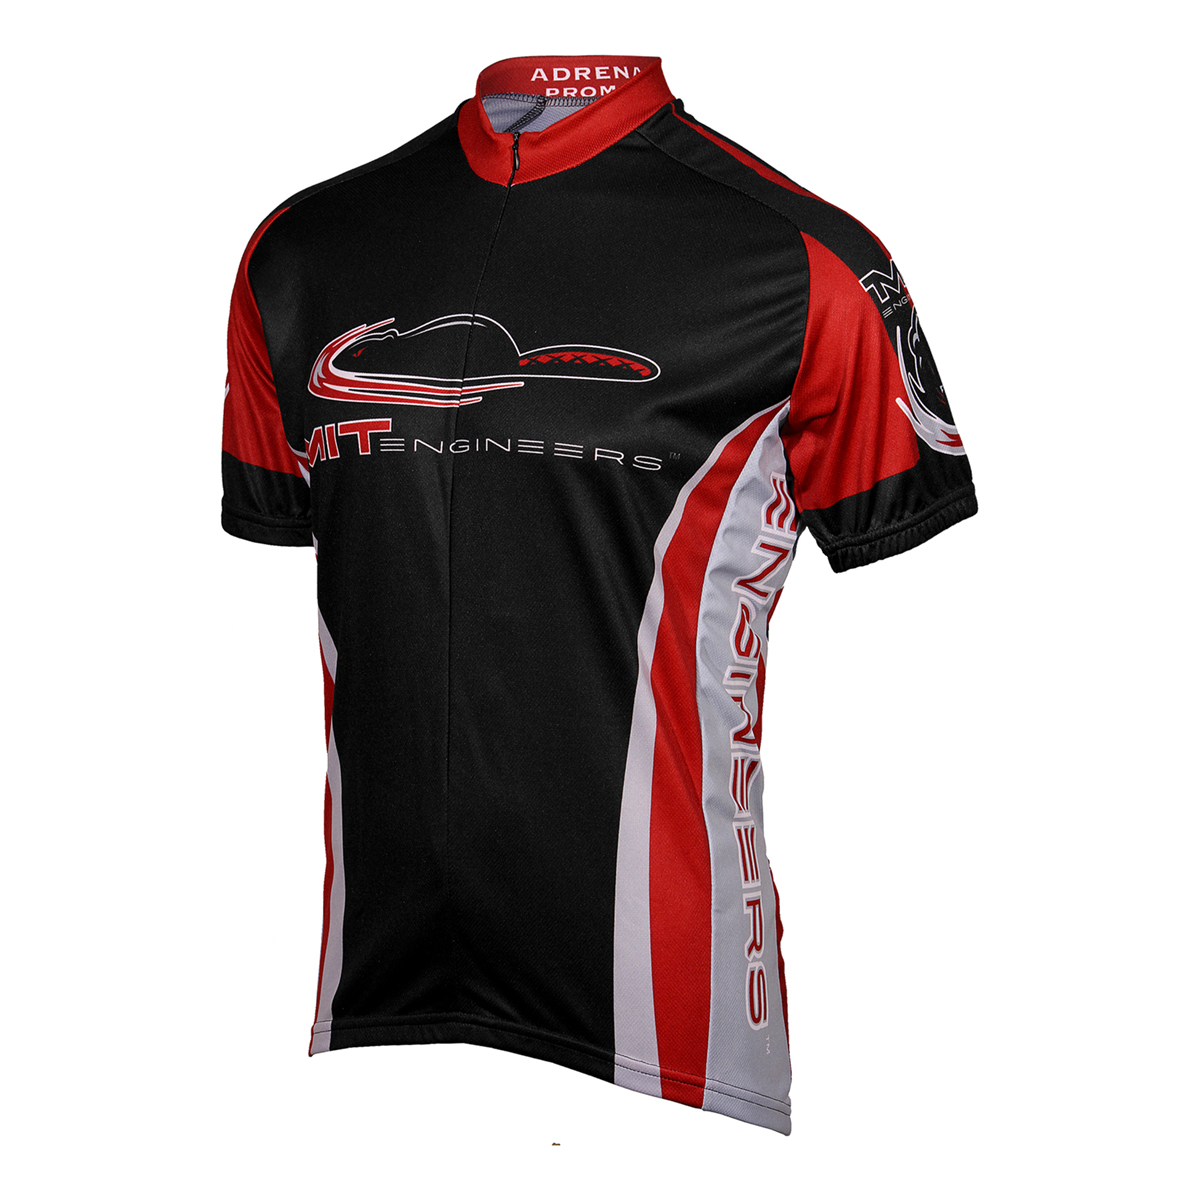 Adrenaline Promotions Massachusetts Institute of Technology Engineers Cycling Jersey